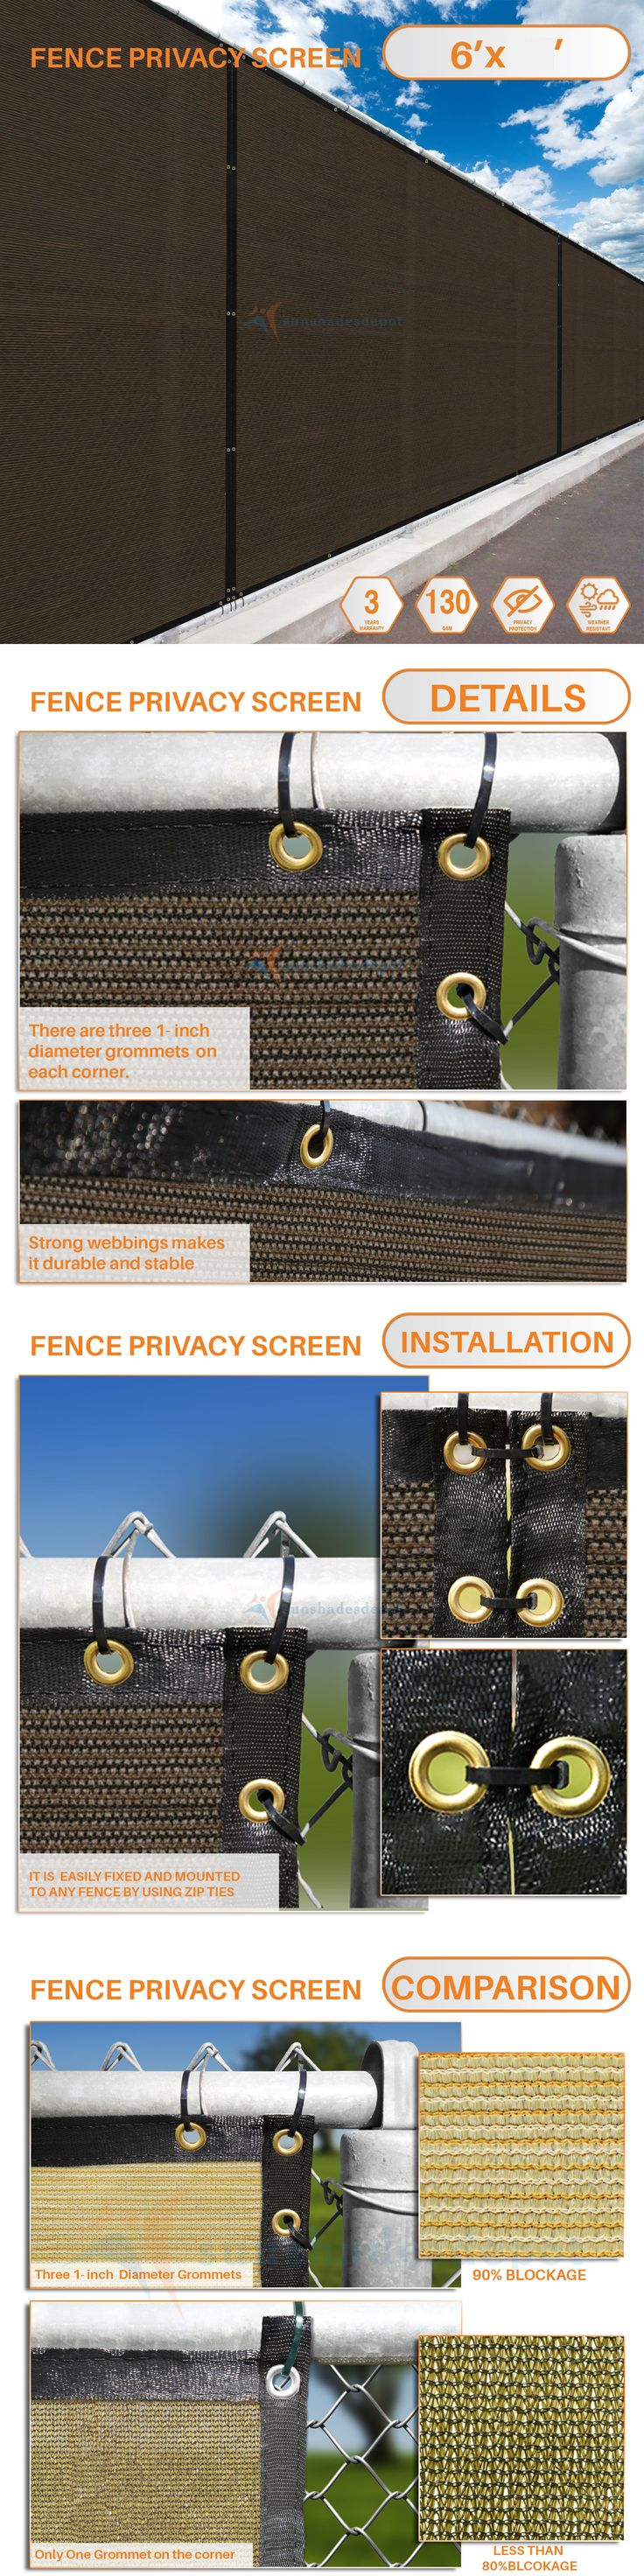 Privacy screen for chain link fence ebay - Privacy Screens Windscreens 180991 Customize 6 Ft Privacy Screen Fence Brown Commercial Windscreen Shade Cover